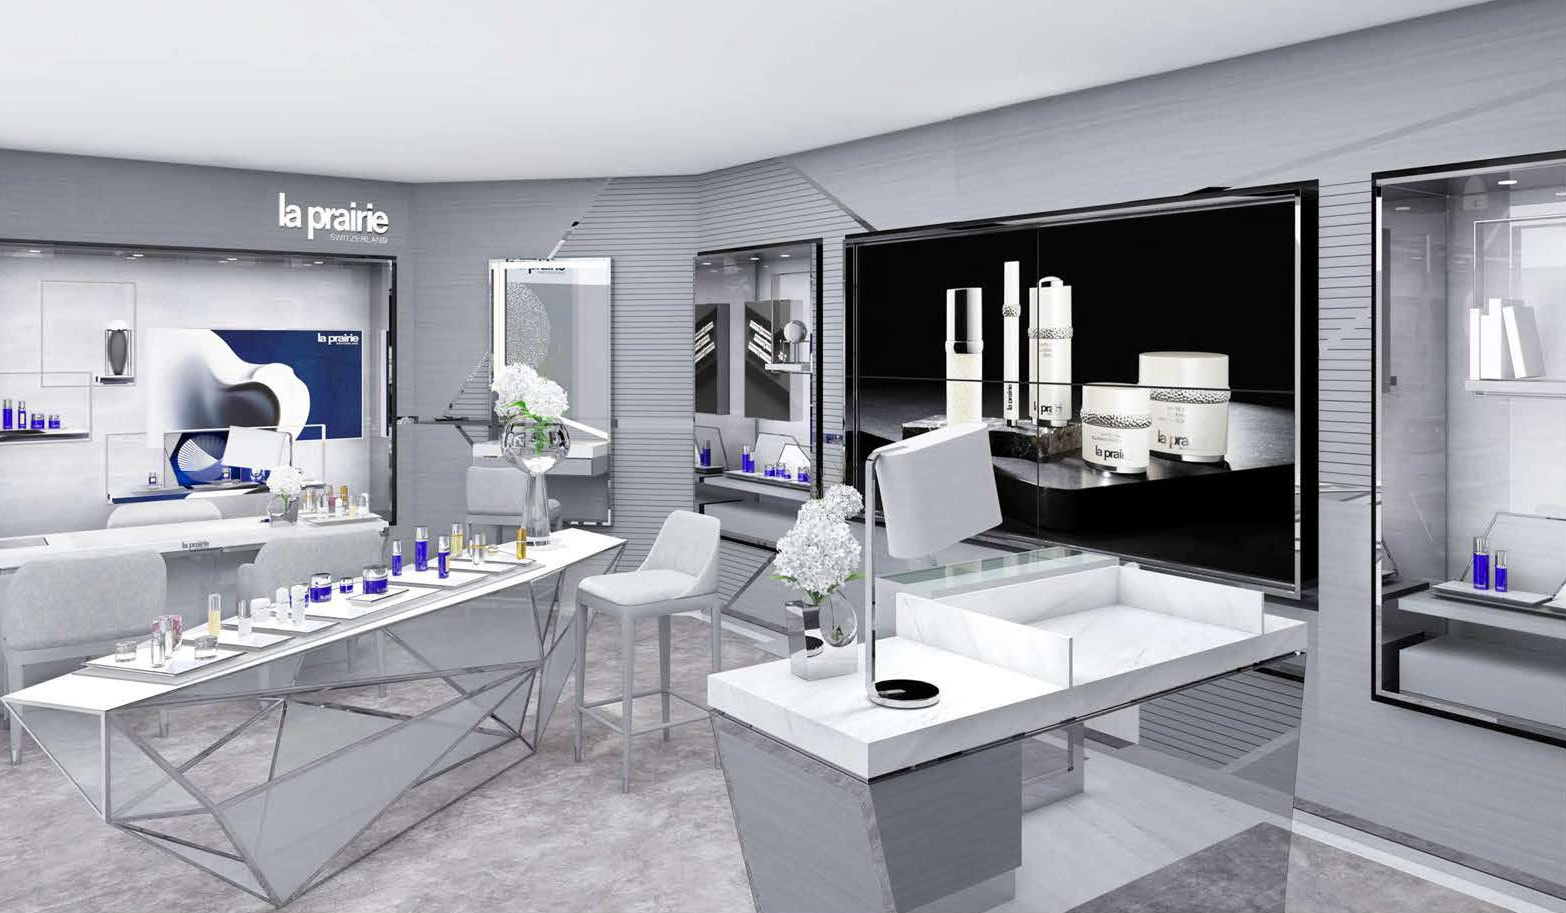 A rendering of La Prairie's new retail concept at Bloomingdale's 59th Street.